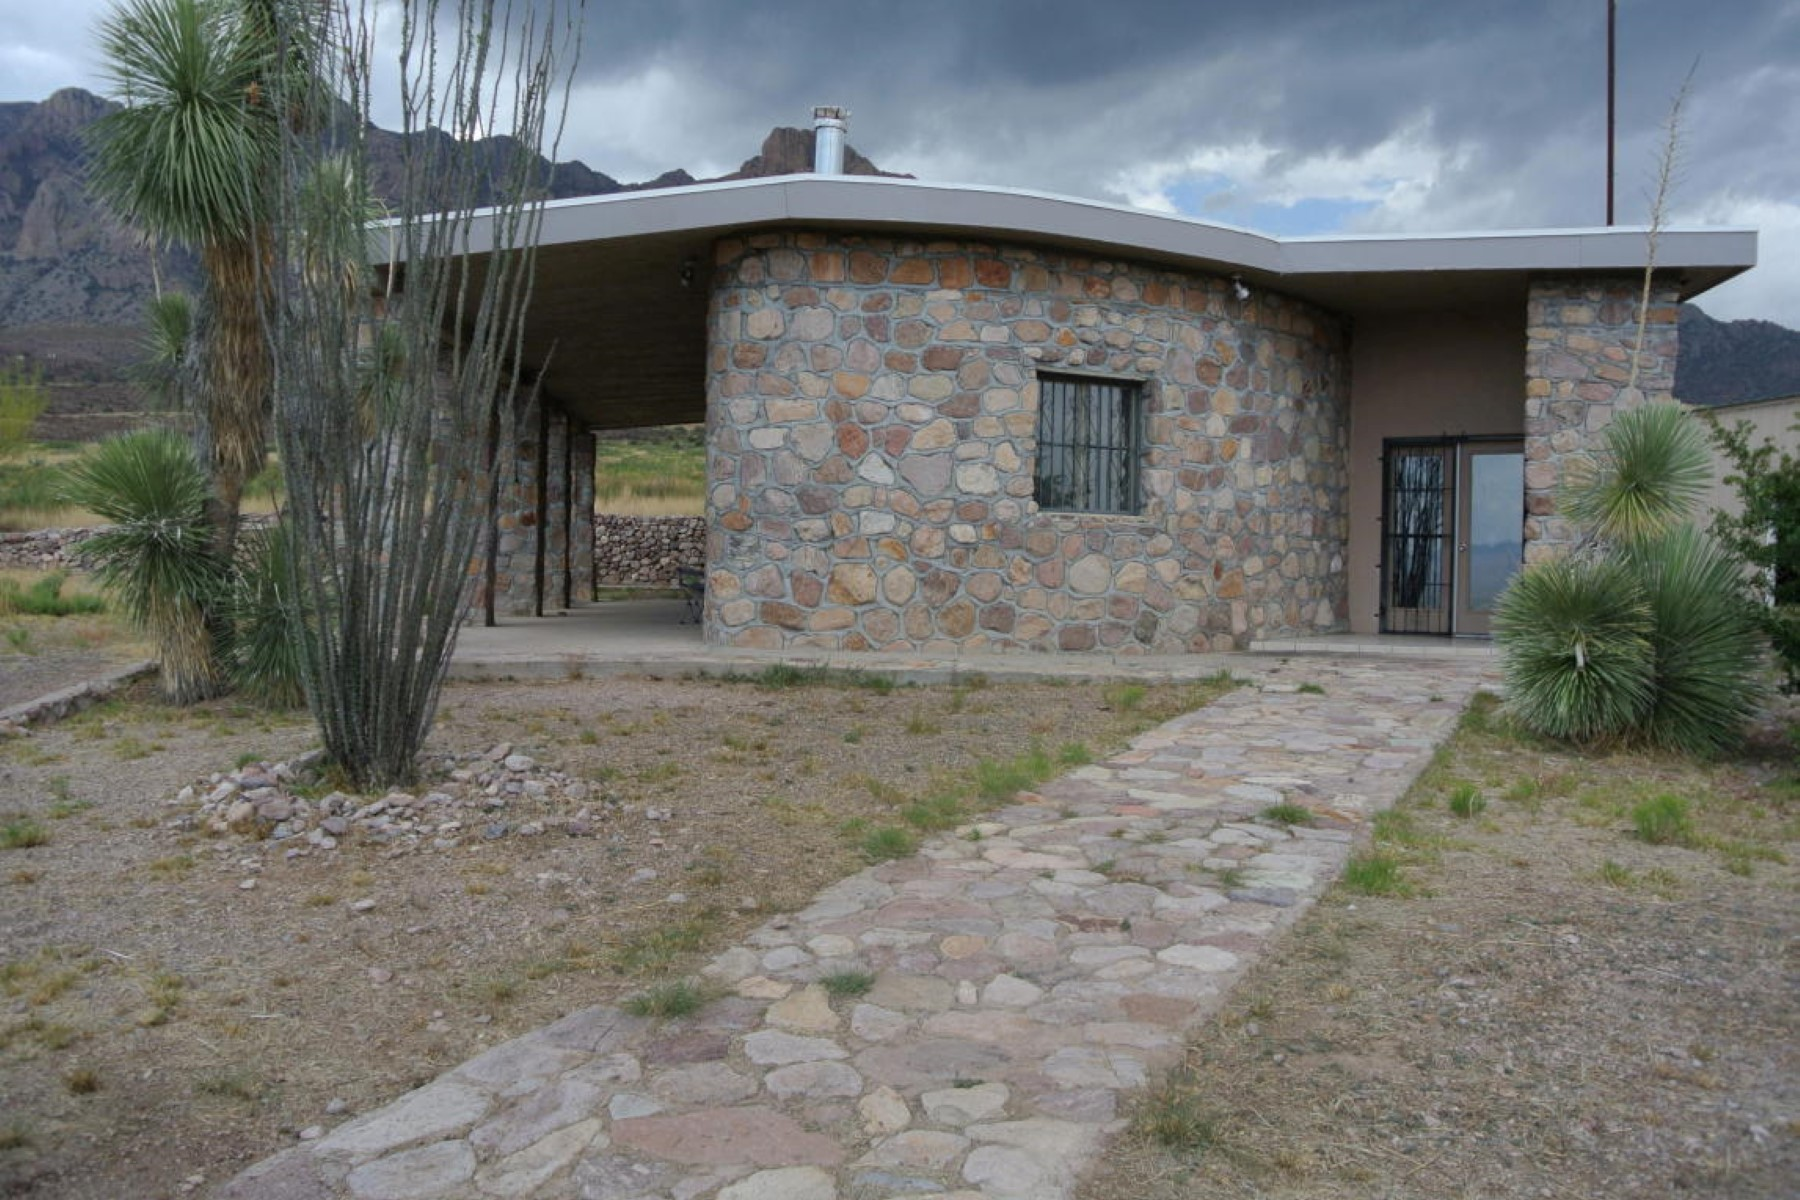 Casa Unifamiliar por un Venta en Lovely home in South Eastern Arizona 777 W McReynolds Way Portal, Arizona, 85632 Estados Unidos